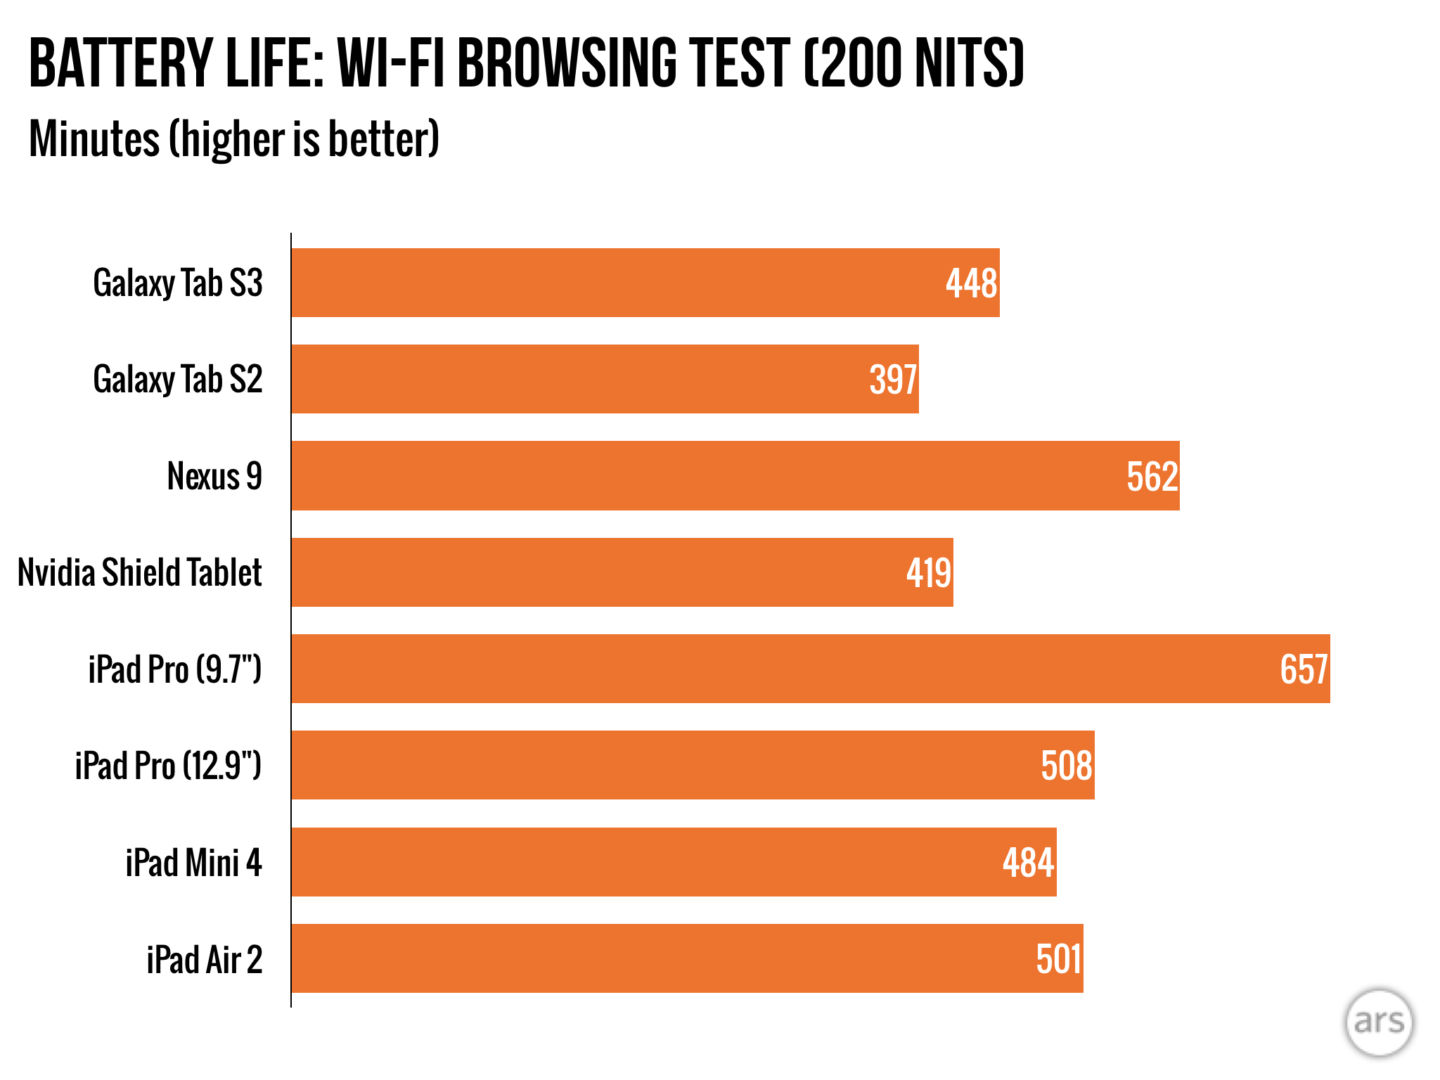 https://cdn.arstechnica.net/wp-content/uploads/2017/03/tabs3_benchmarks_BATTERY.001-1440x1080.jpeg